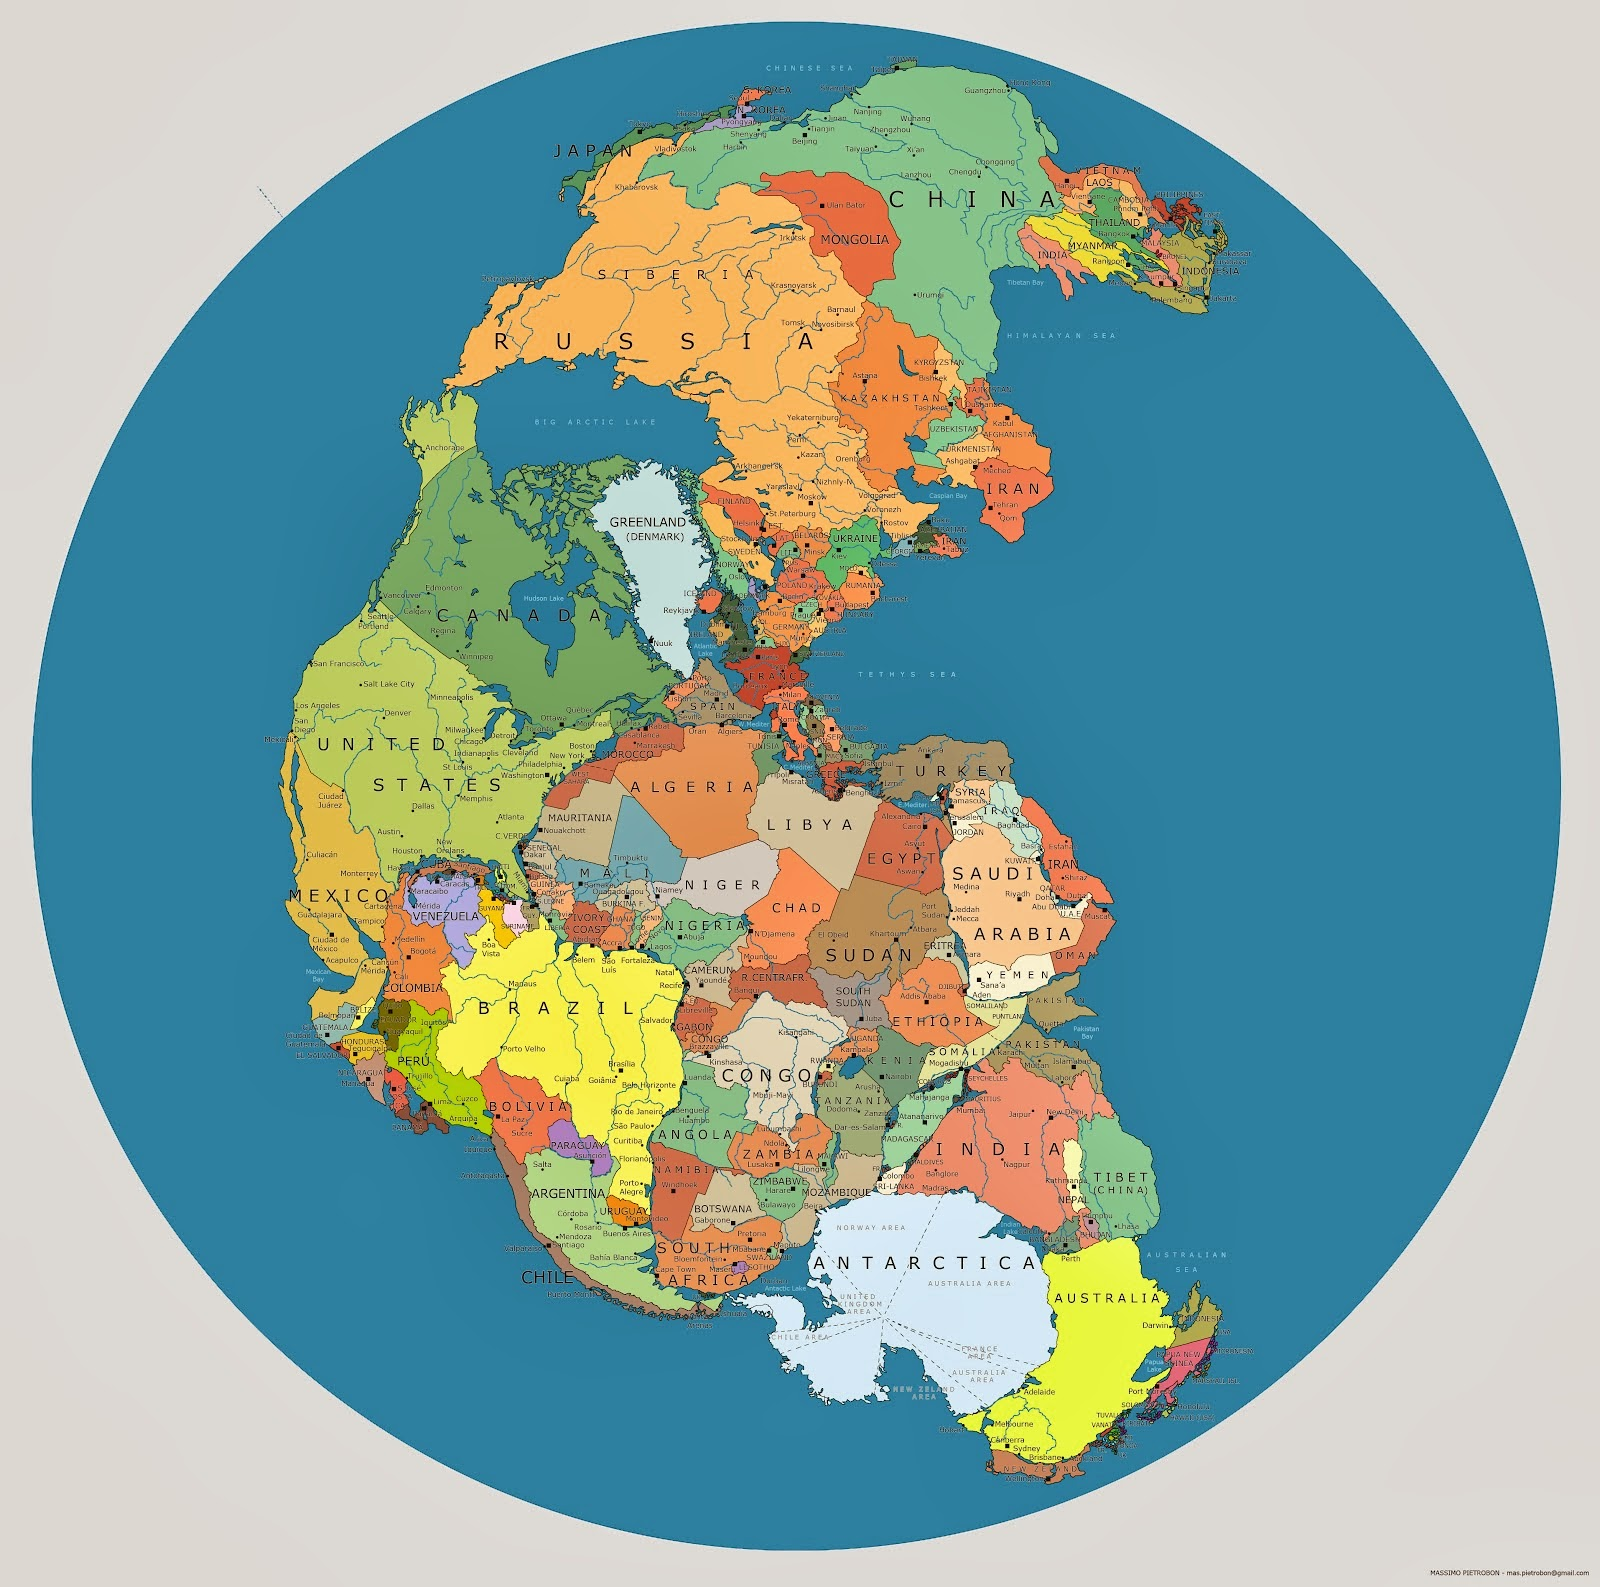 pangaea started to break up into two smaller supercontinents called laurasia and gondwanaland during the jurassic period by the end of the cretaceous